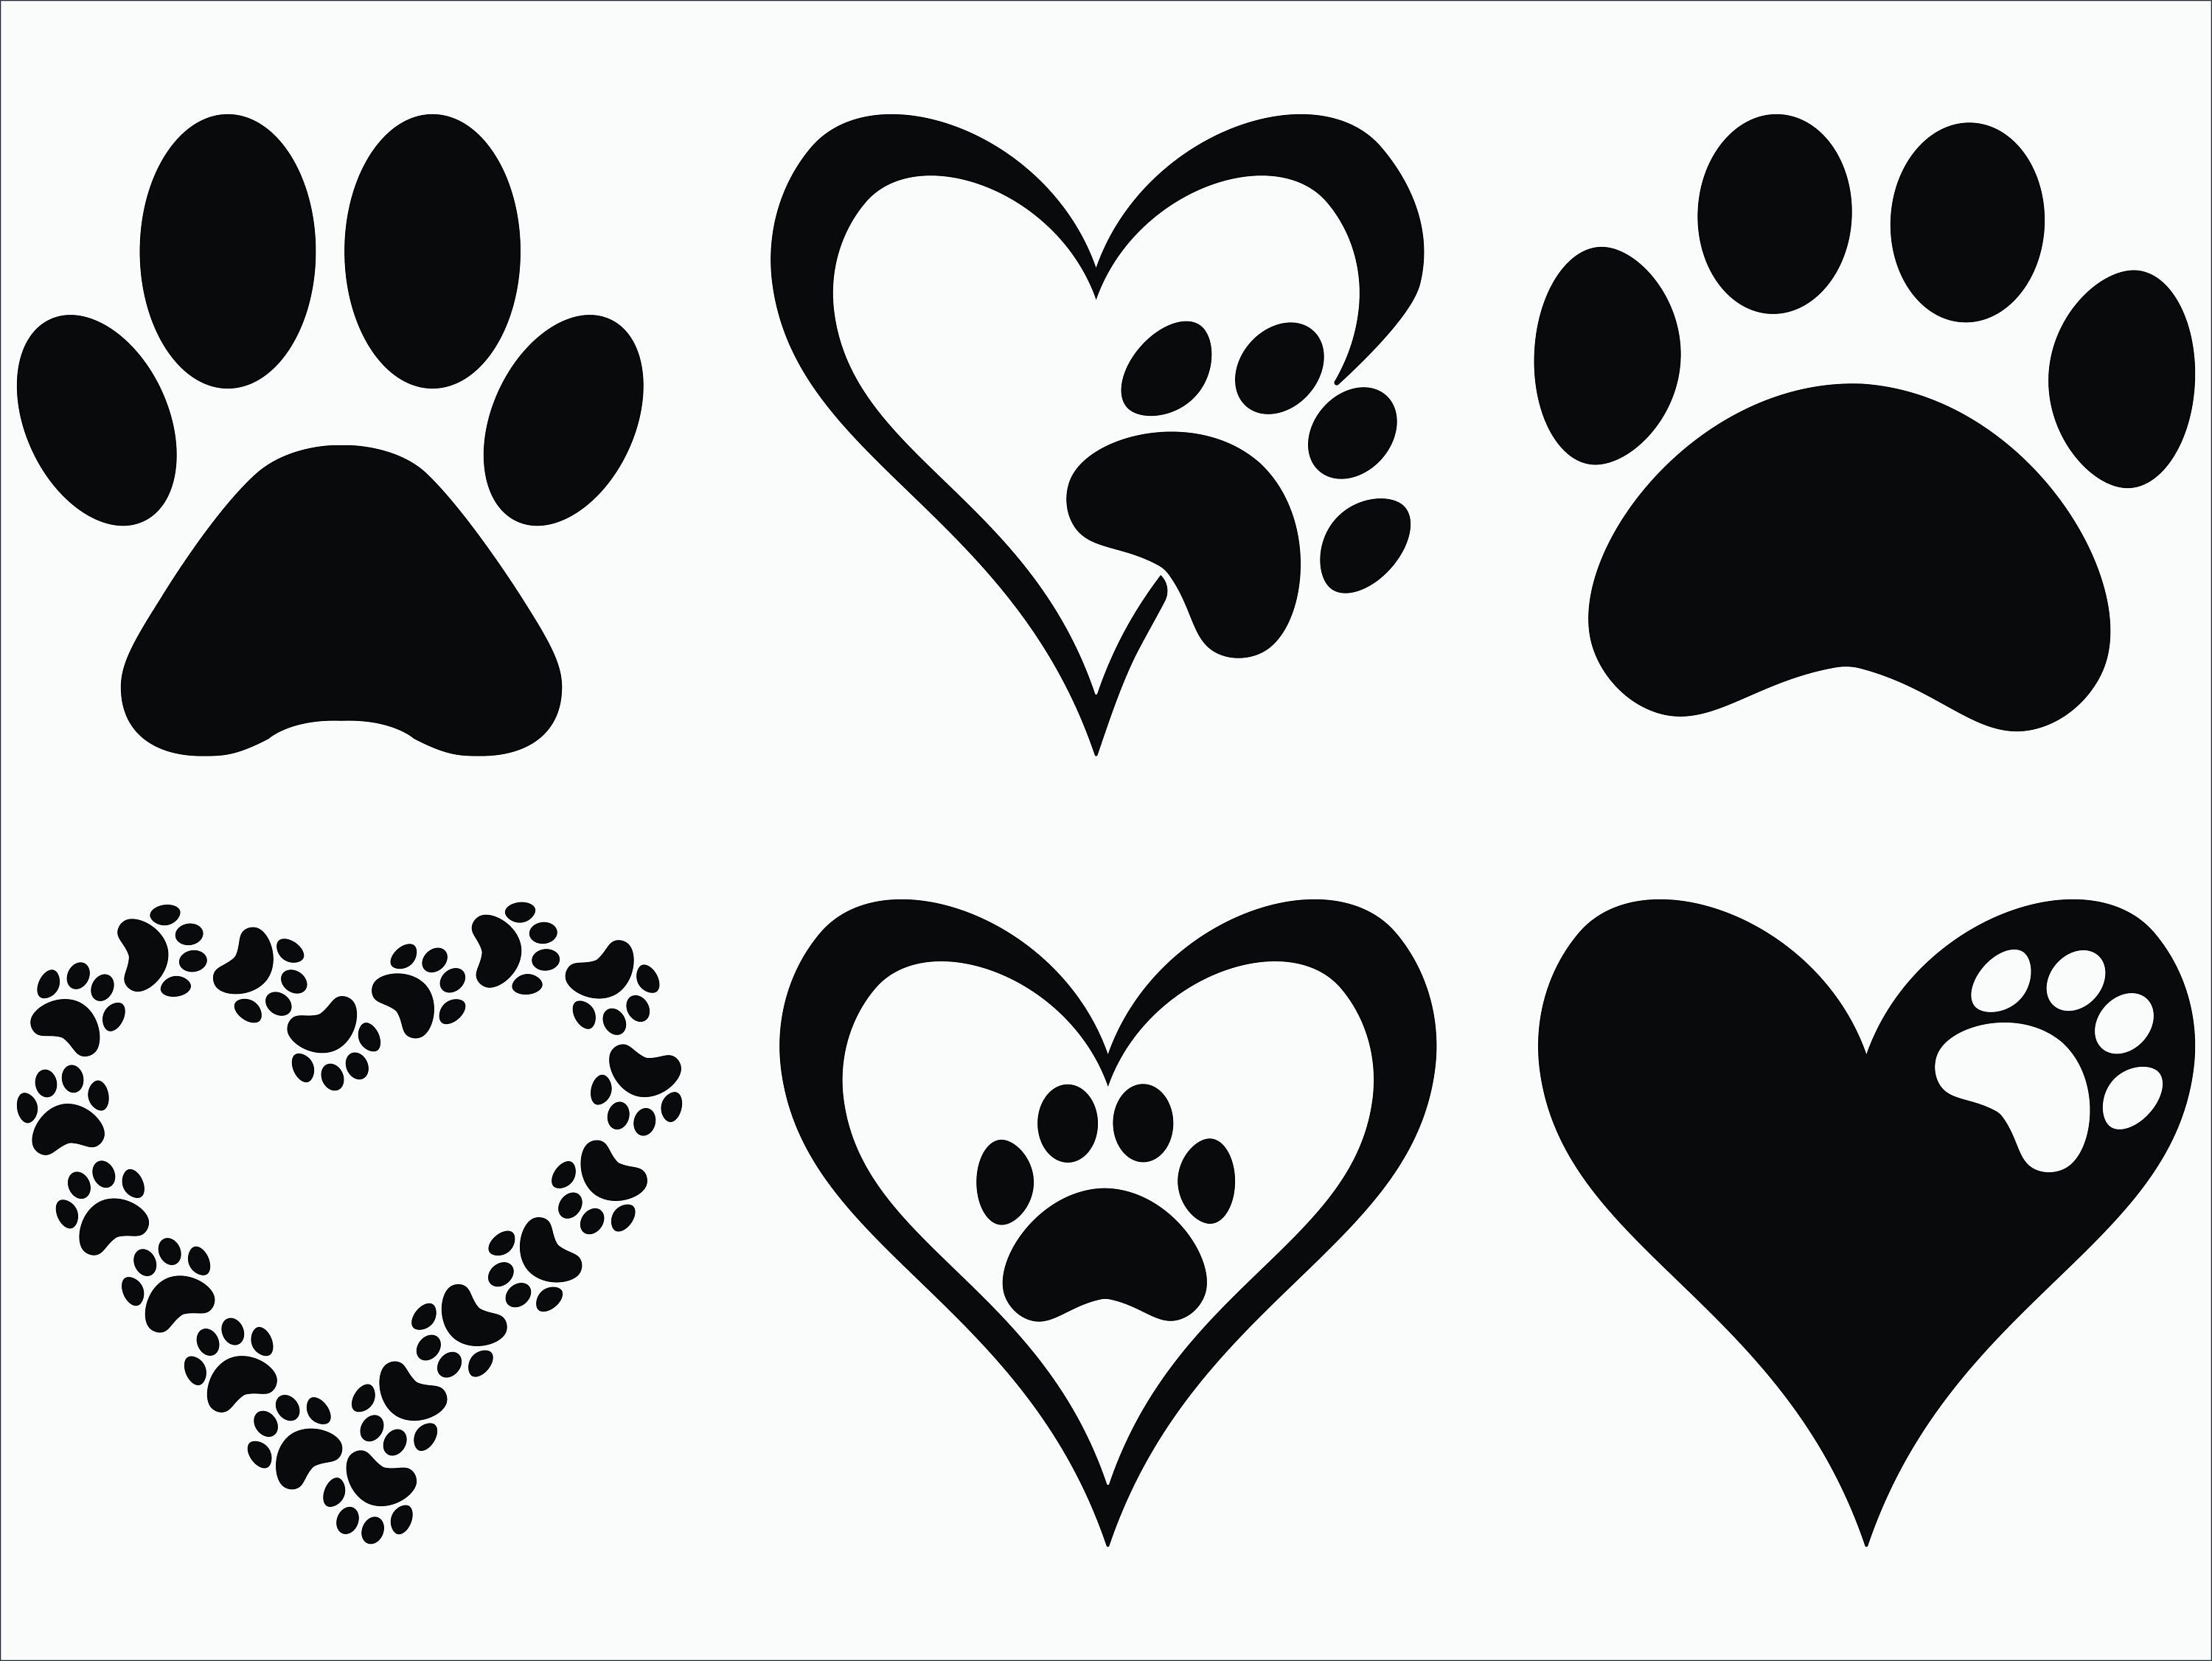 Paw Print Svg Eps Png 300ppi Dxf Paw Print Vector Etsy In 2020 Paw Print Art Dog Tattoos Clip Art